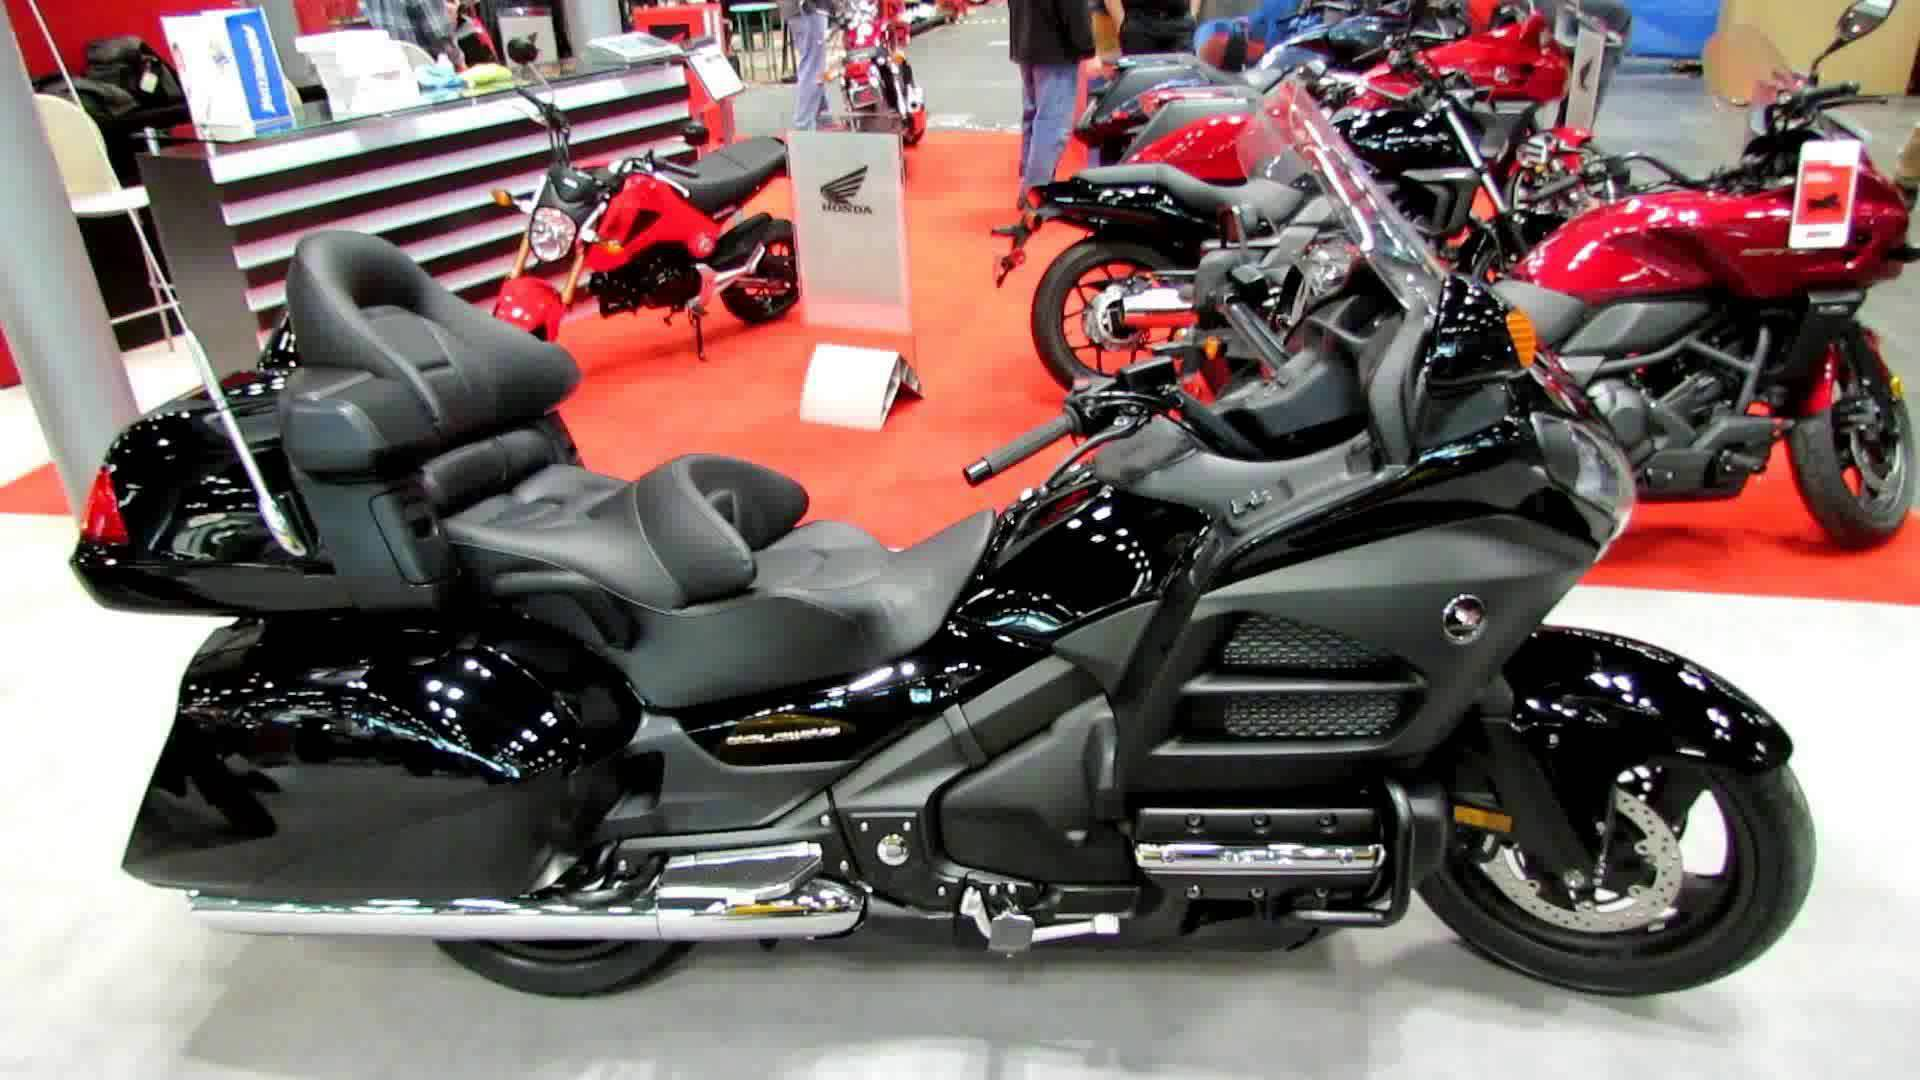 Honda GL 1800 Gold Wing images #82727